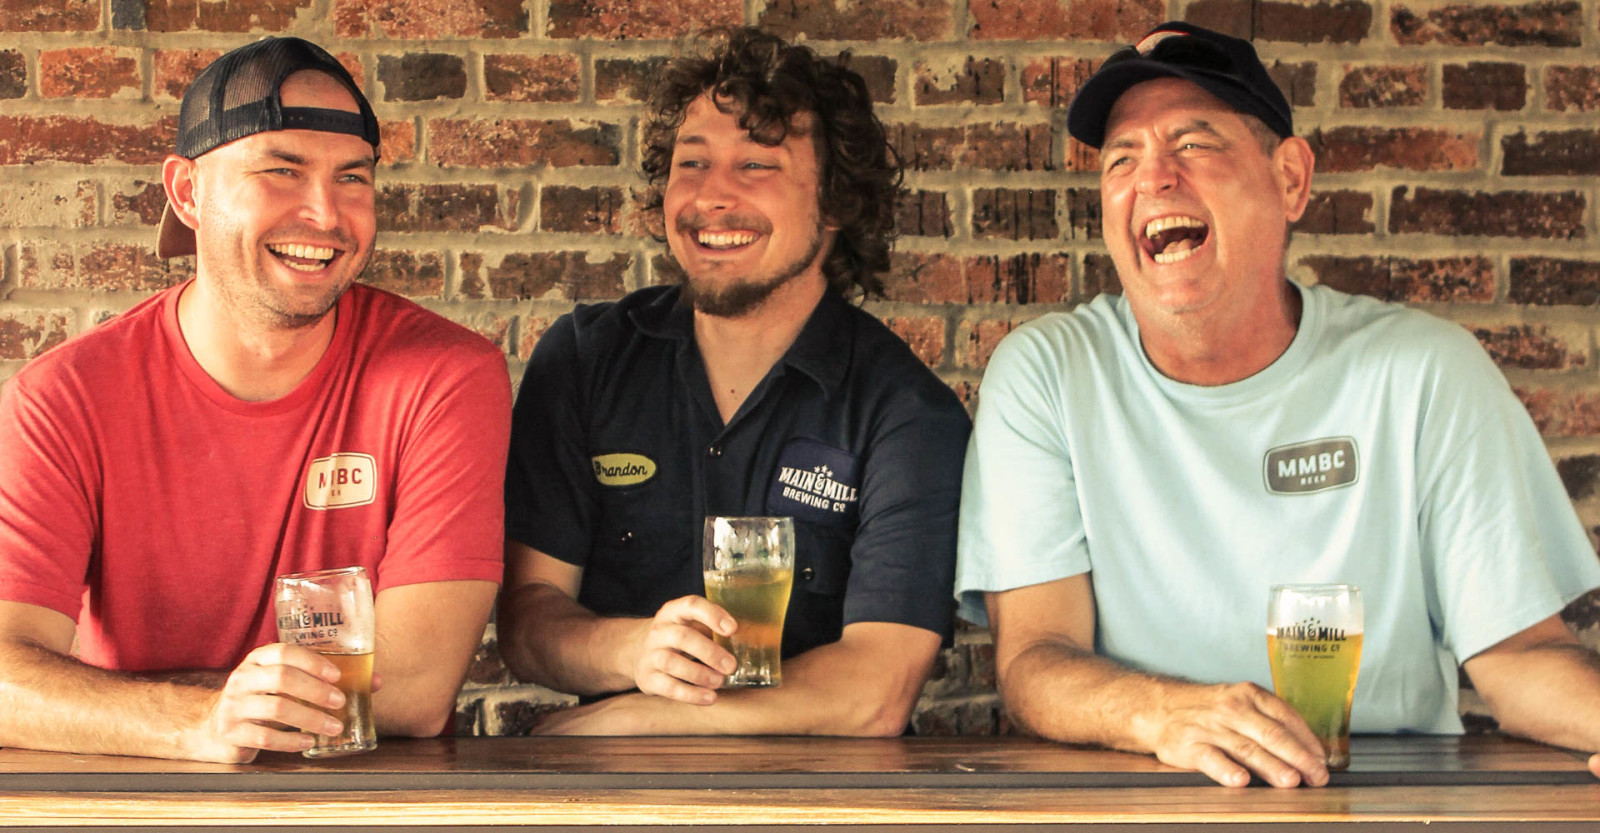 Podcast Episode 94: Main & Mill Brewing Co 's Denny Foster & Brandon